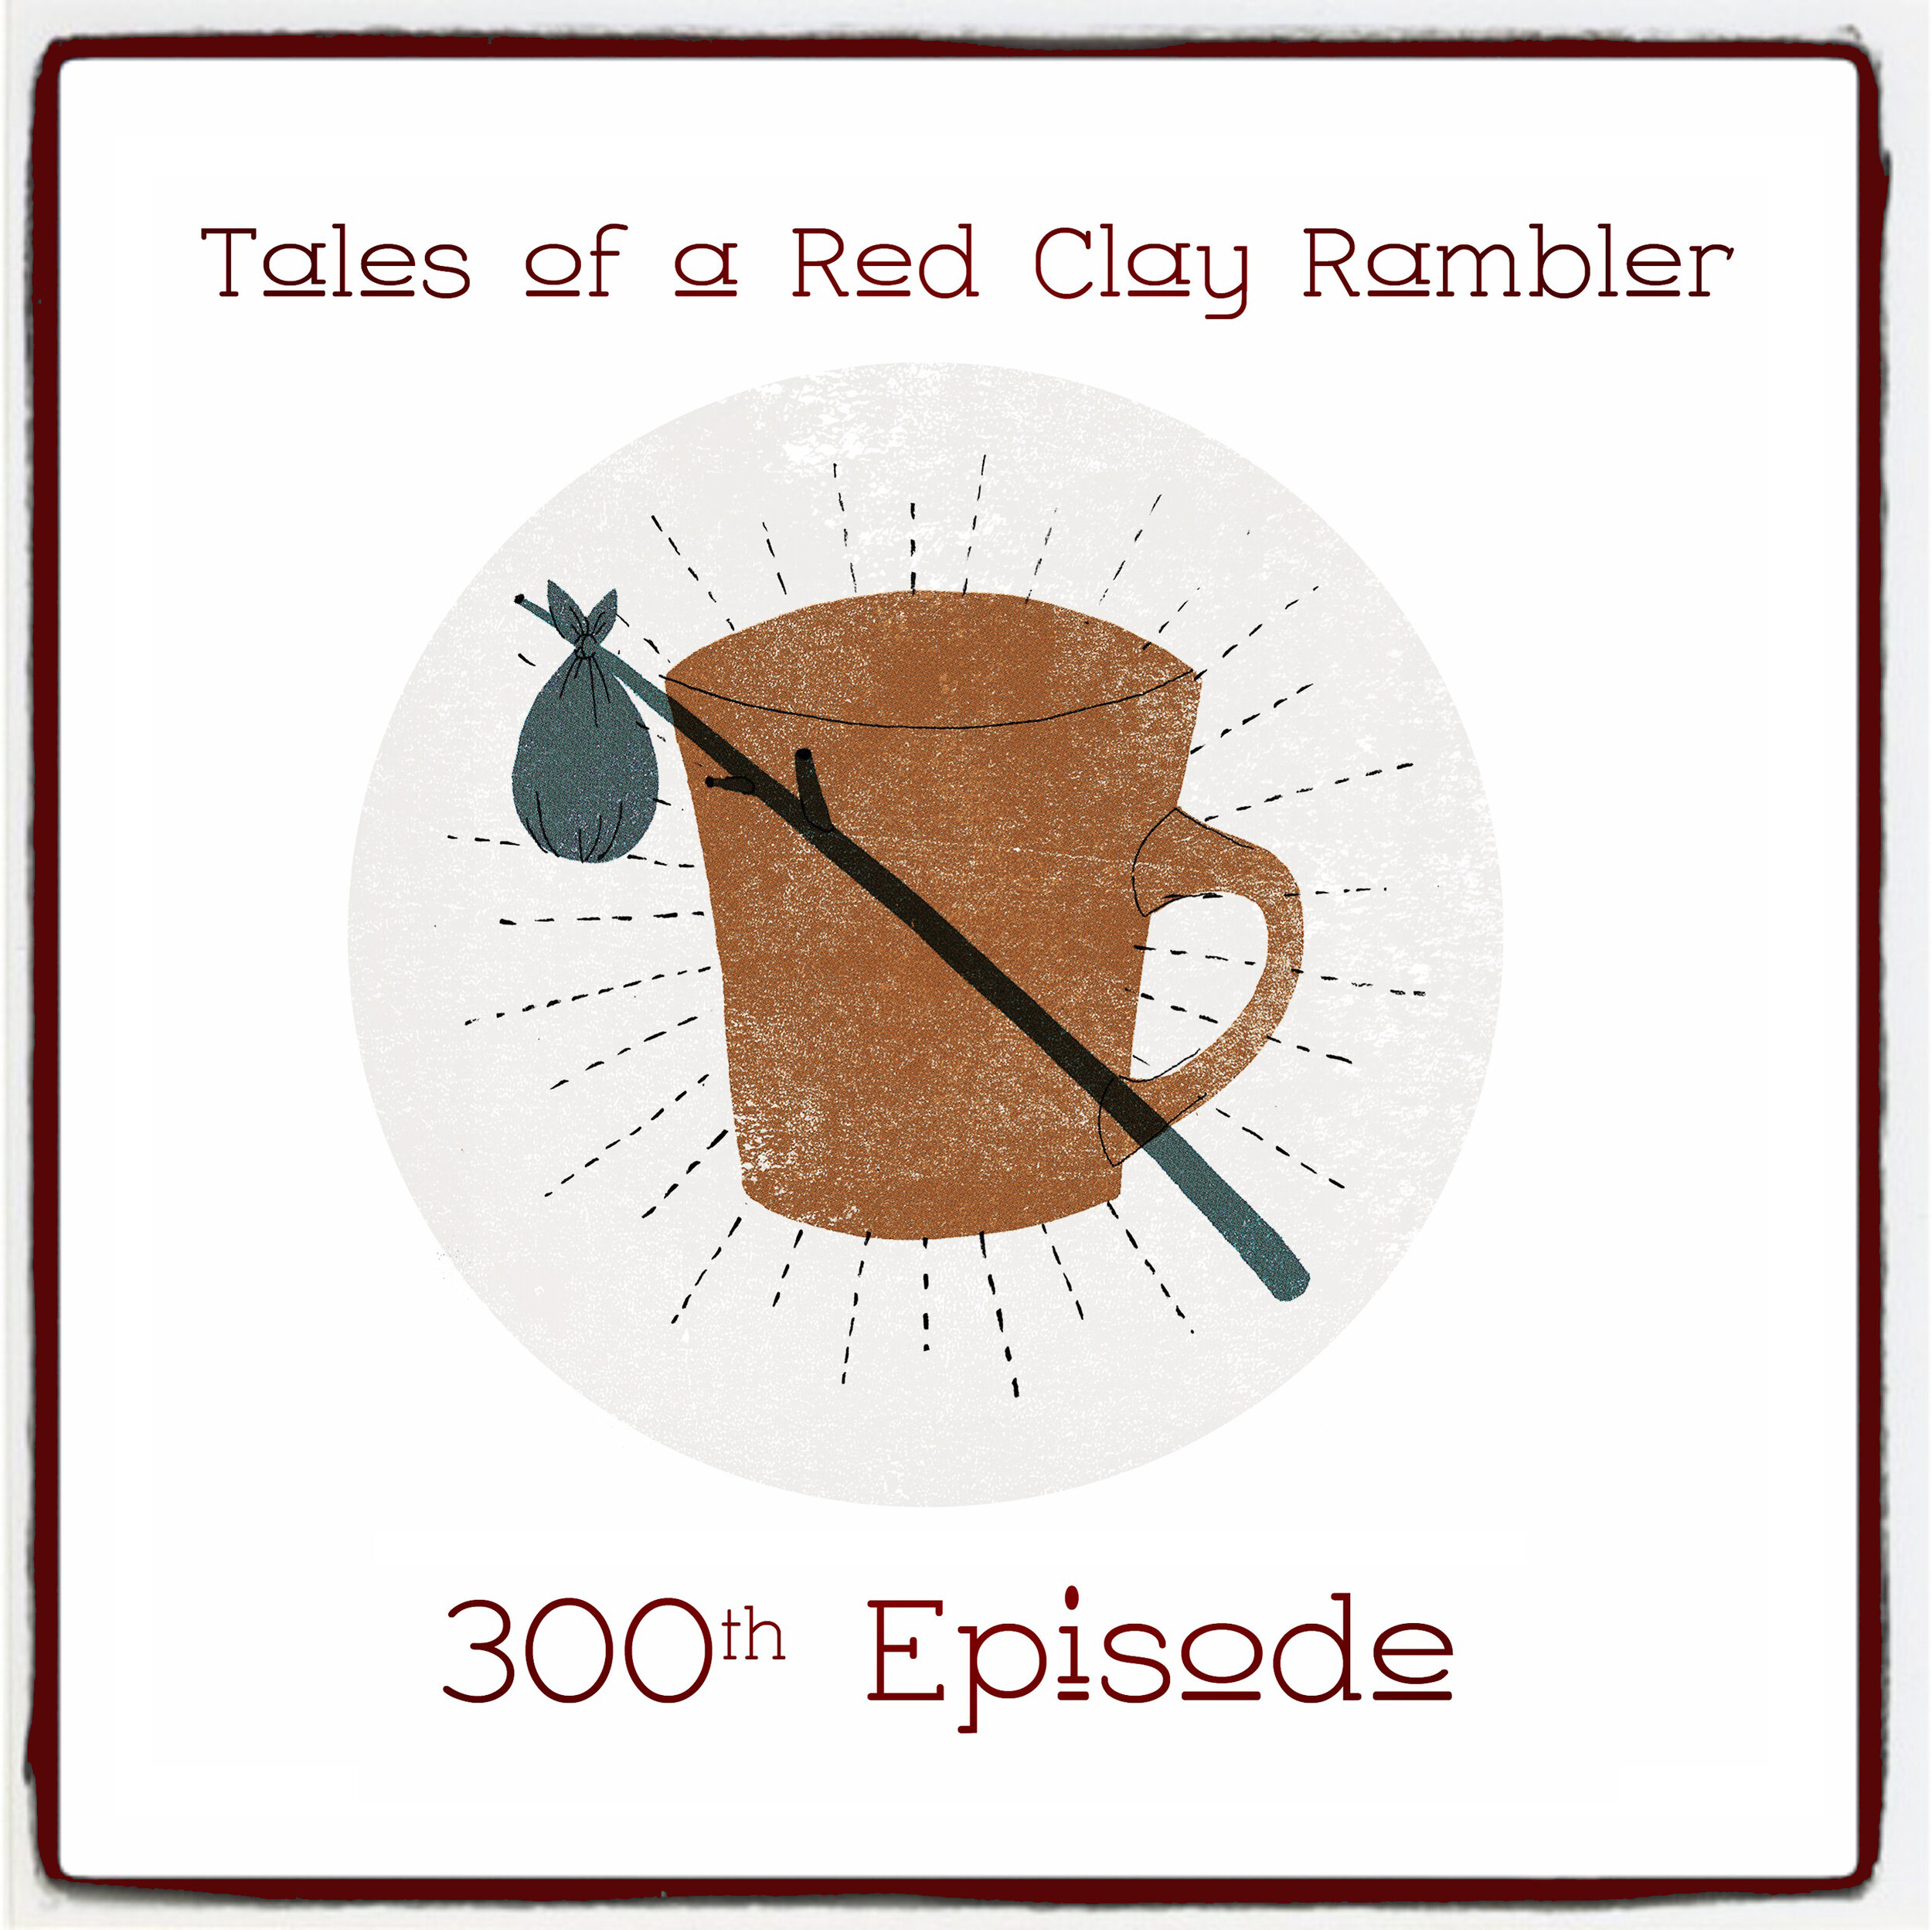 300: Listener Mailbag to celebrate our 300th episode!